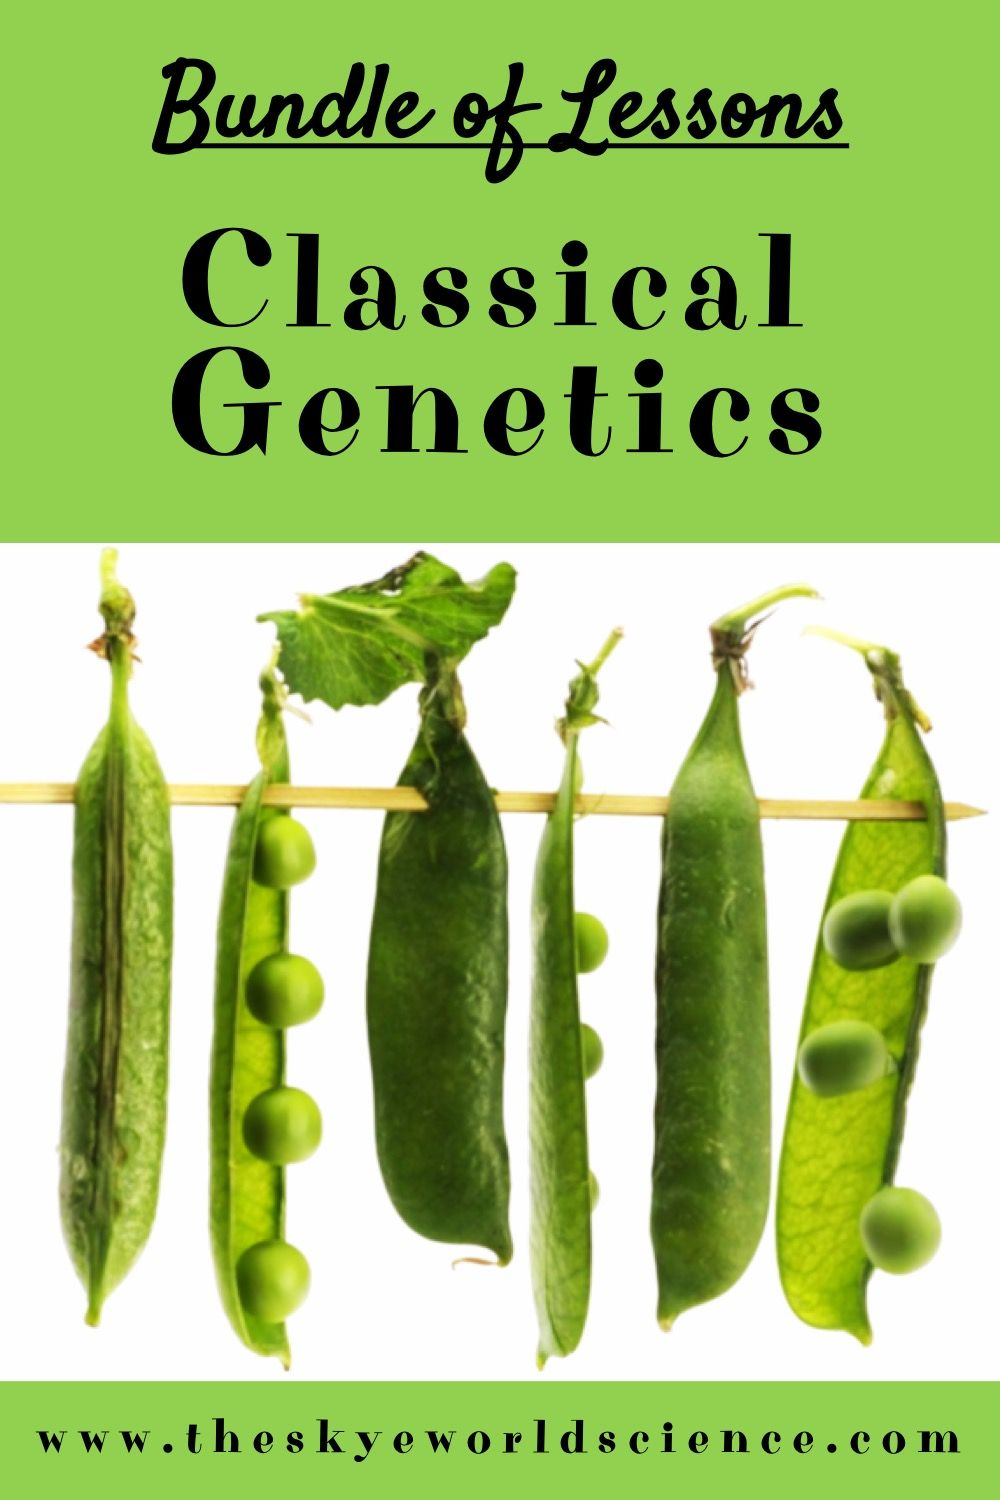 Bundle of Lessons Classical and Heredity